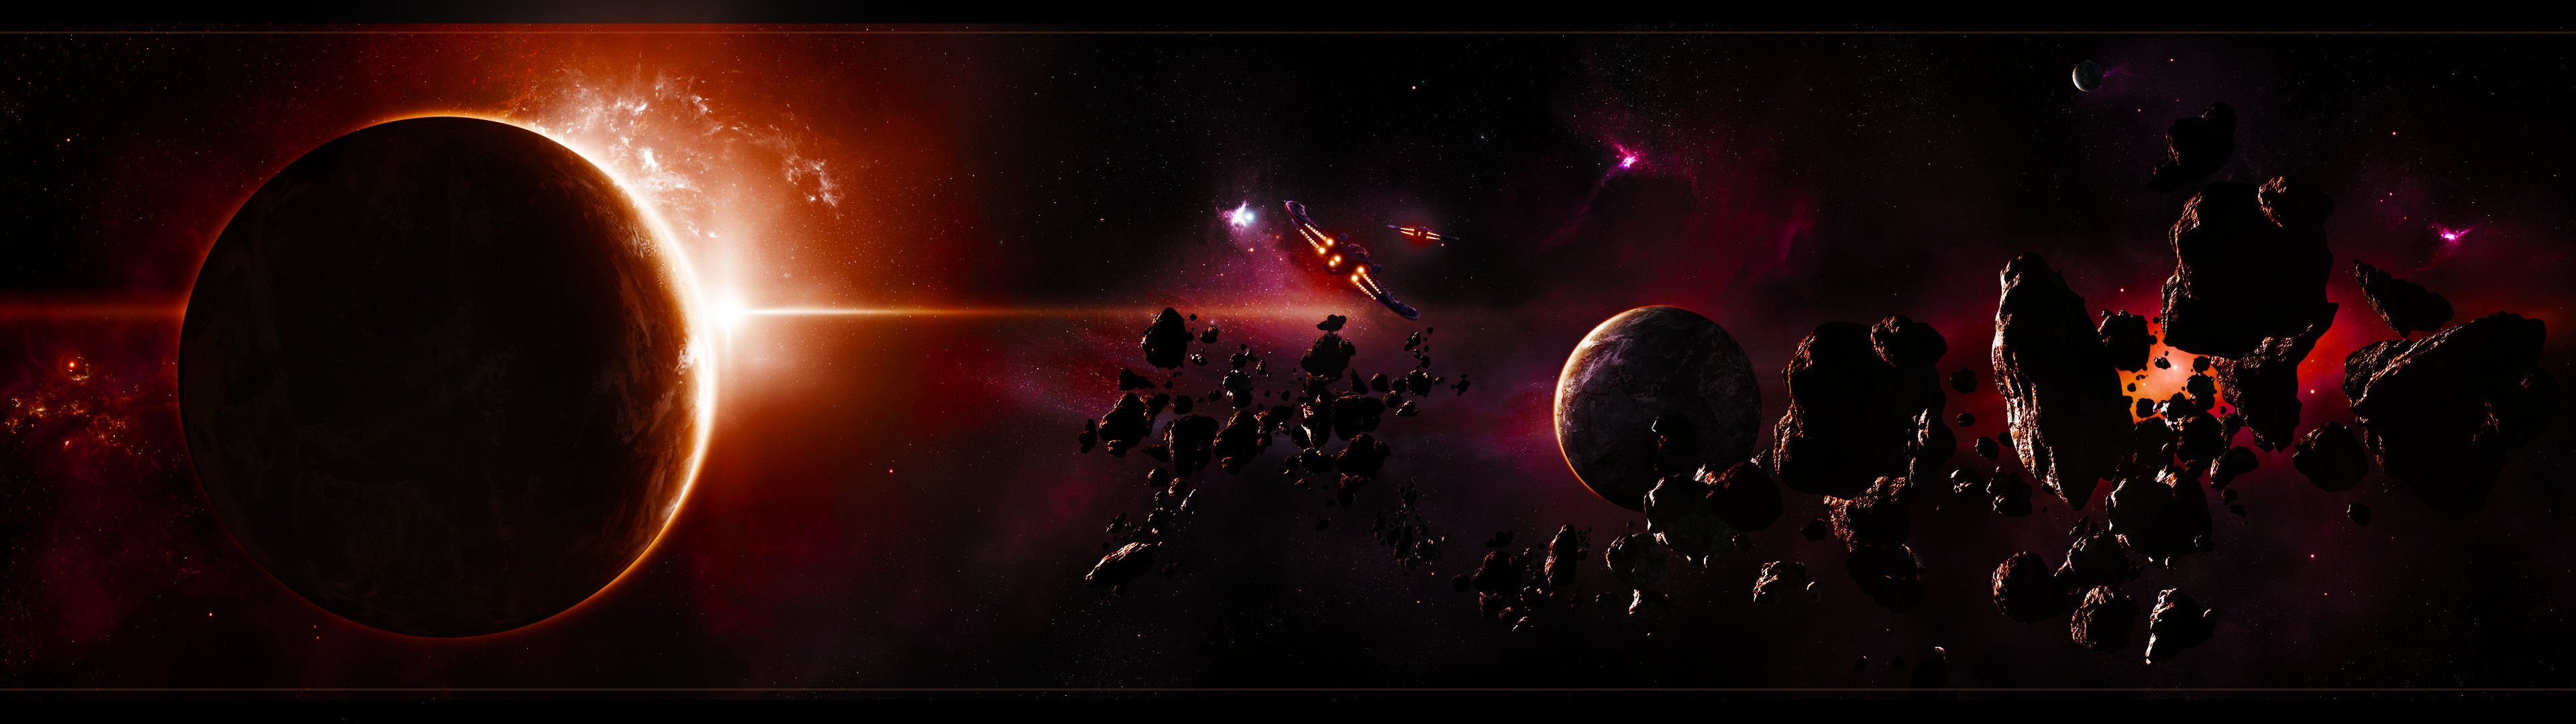 Space Wallpaper 3840x1080 Outer space planets wallpaper x WallpaperUP